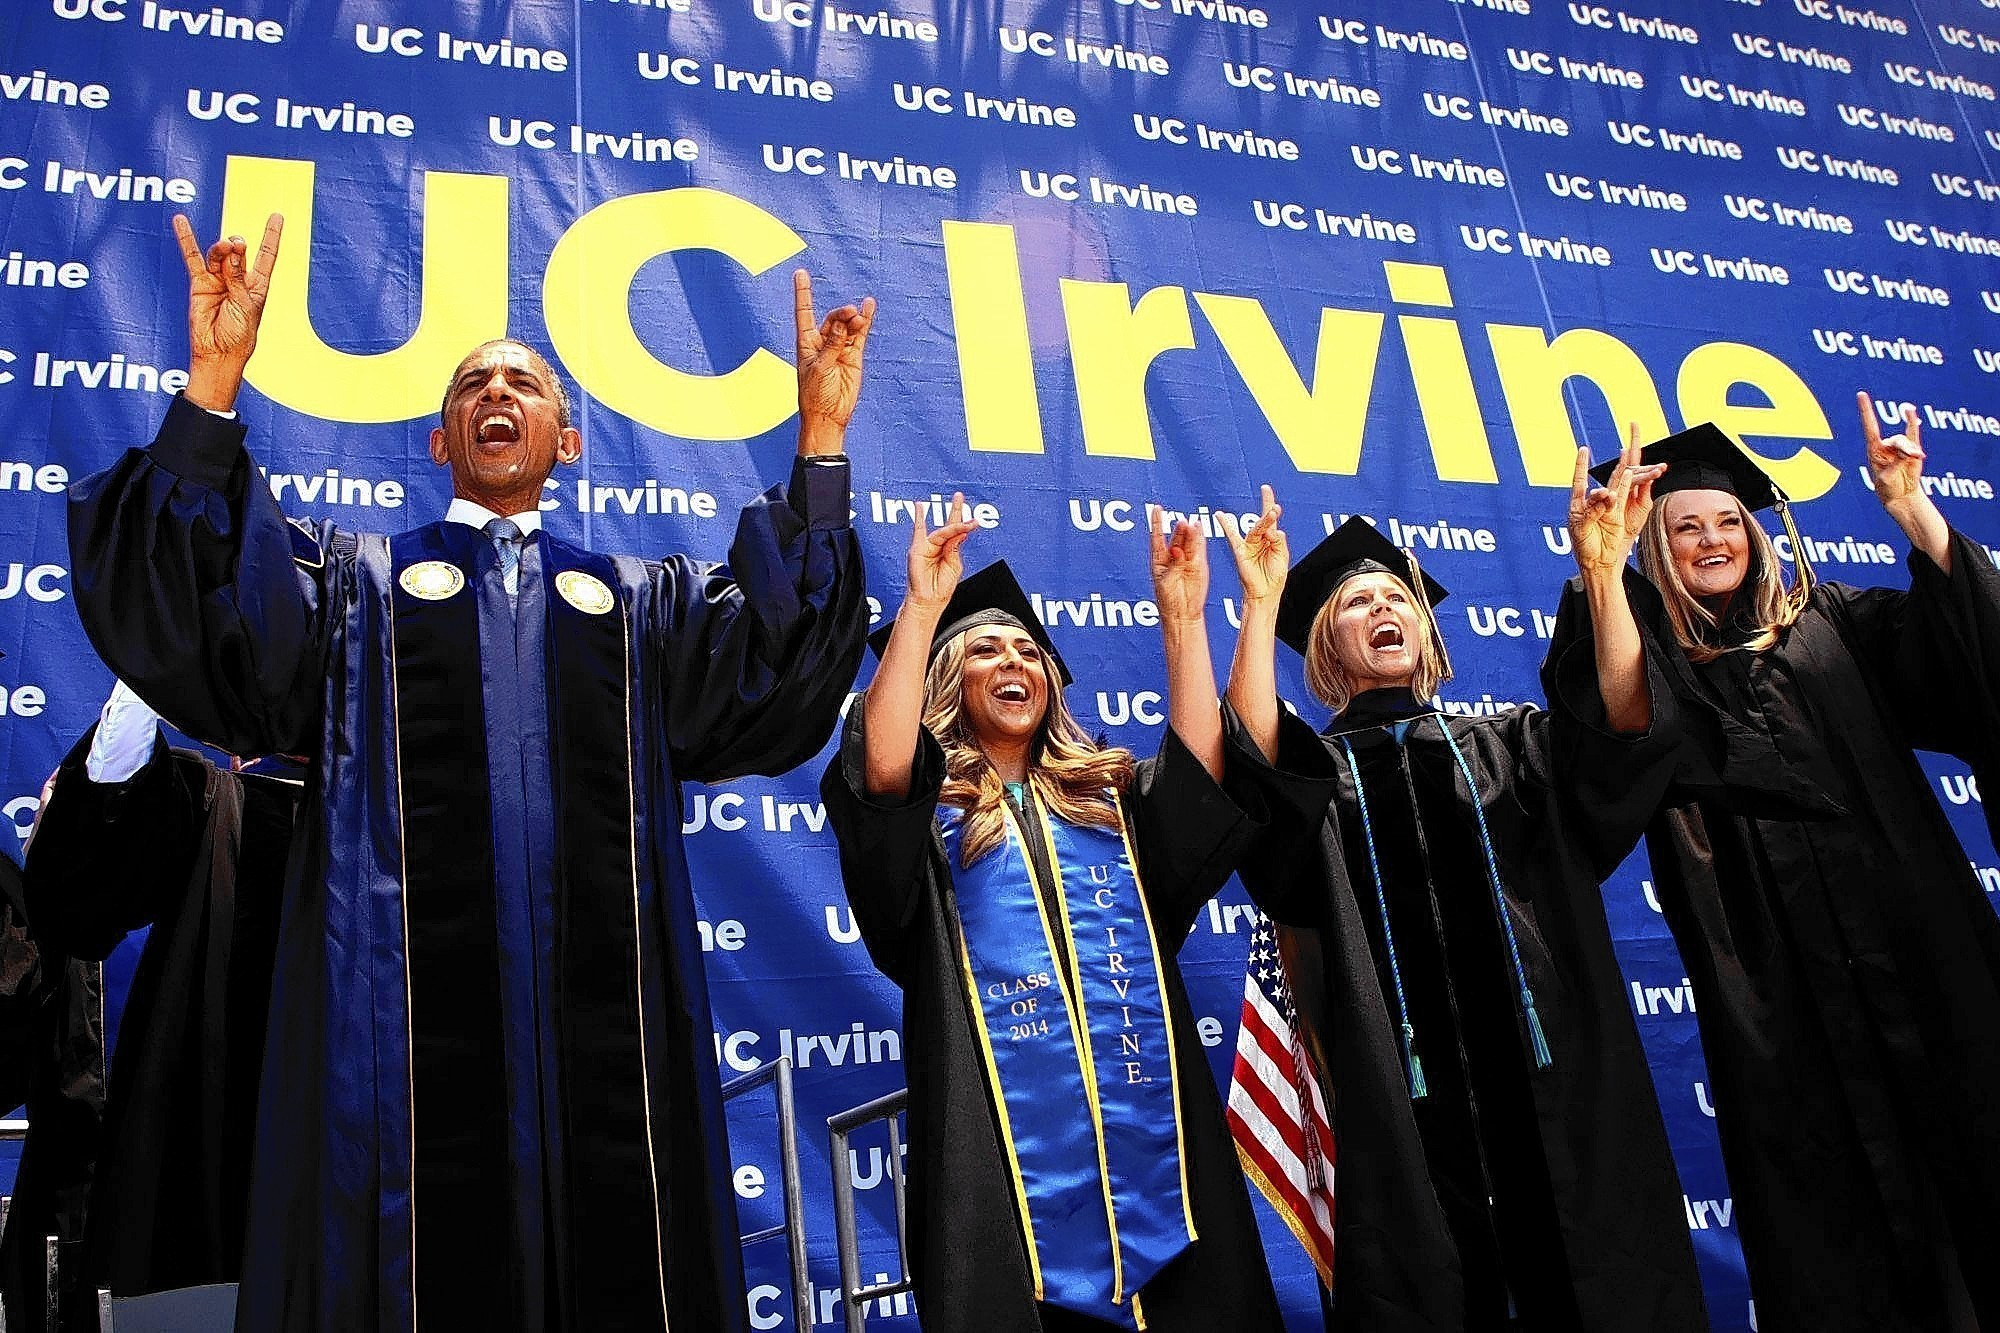 Chances of getting into UC Irvine? Pleasee help?